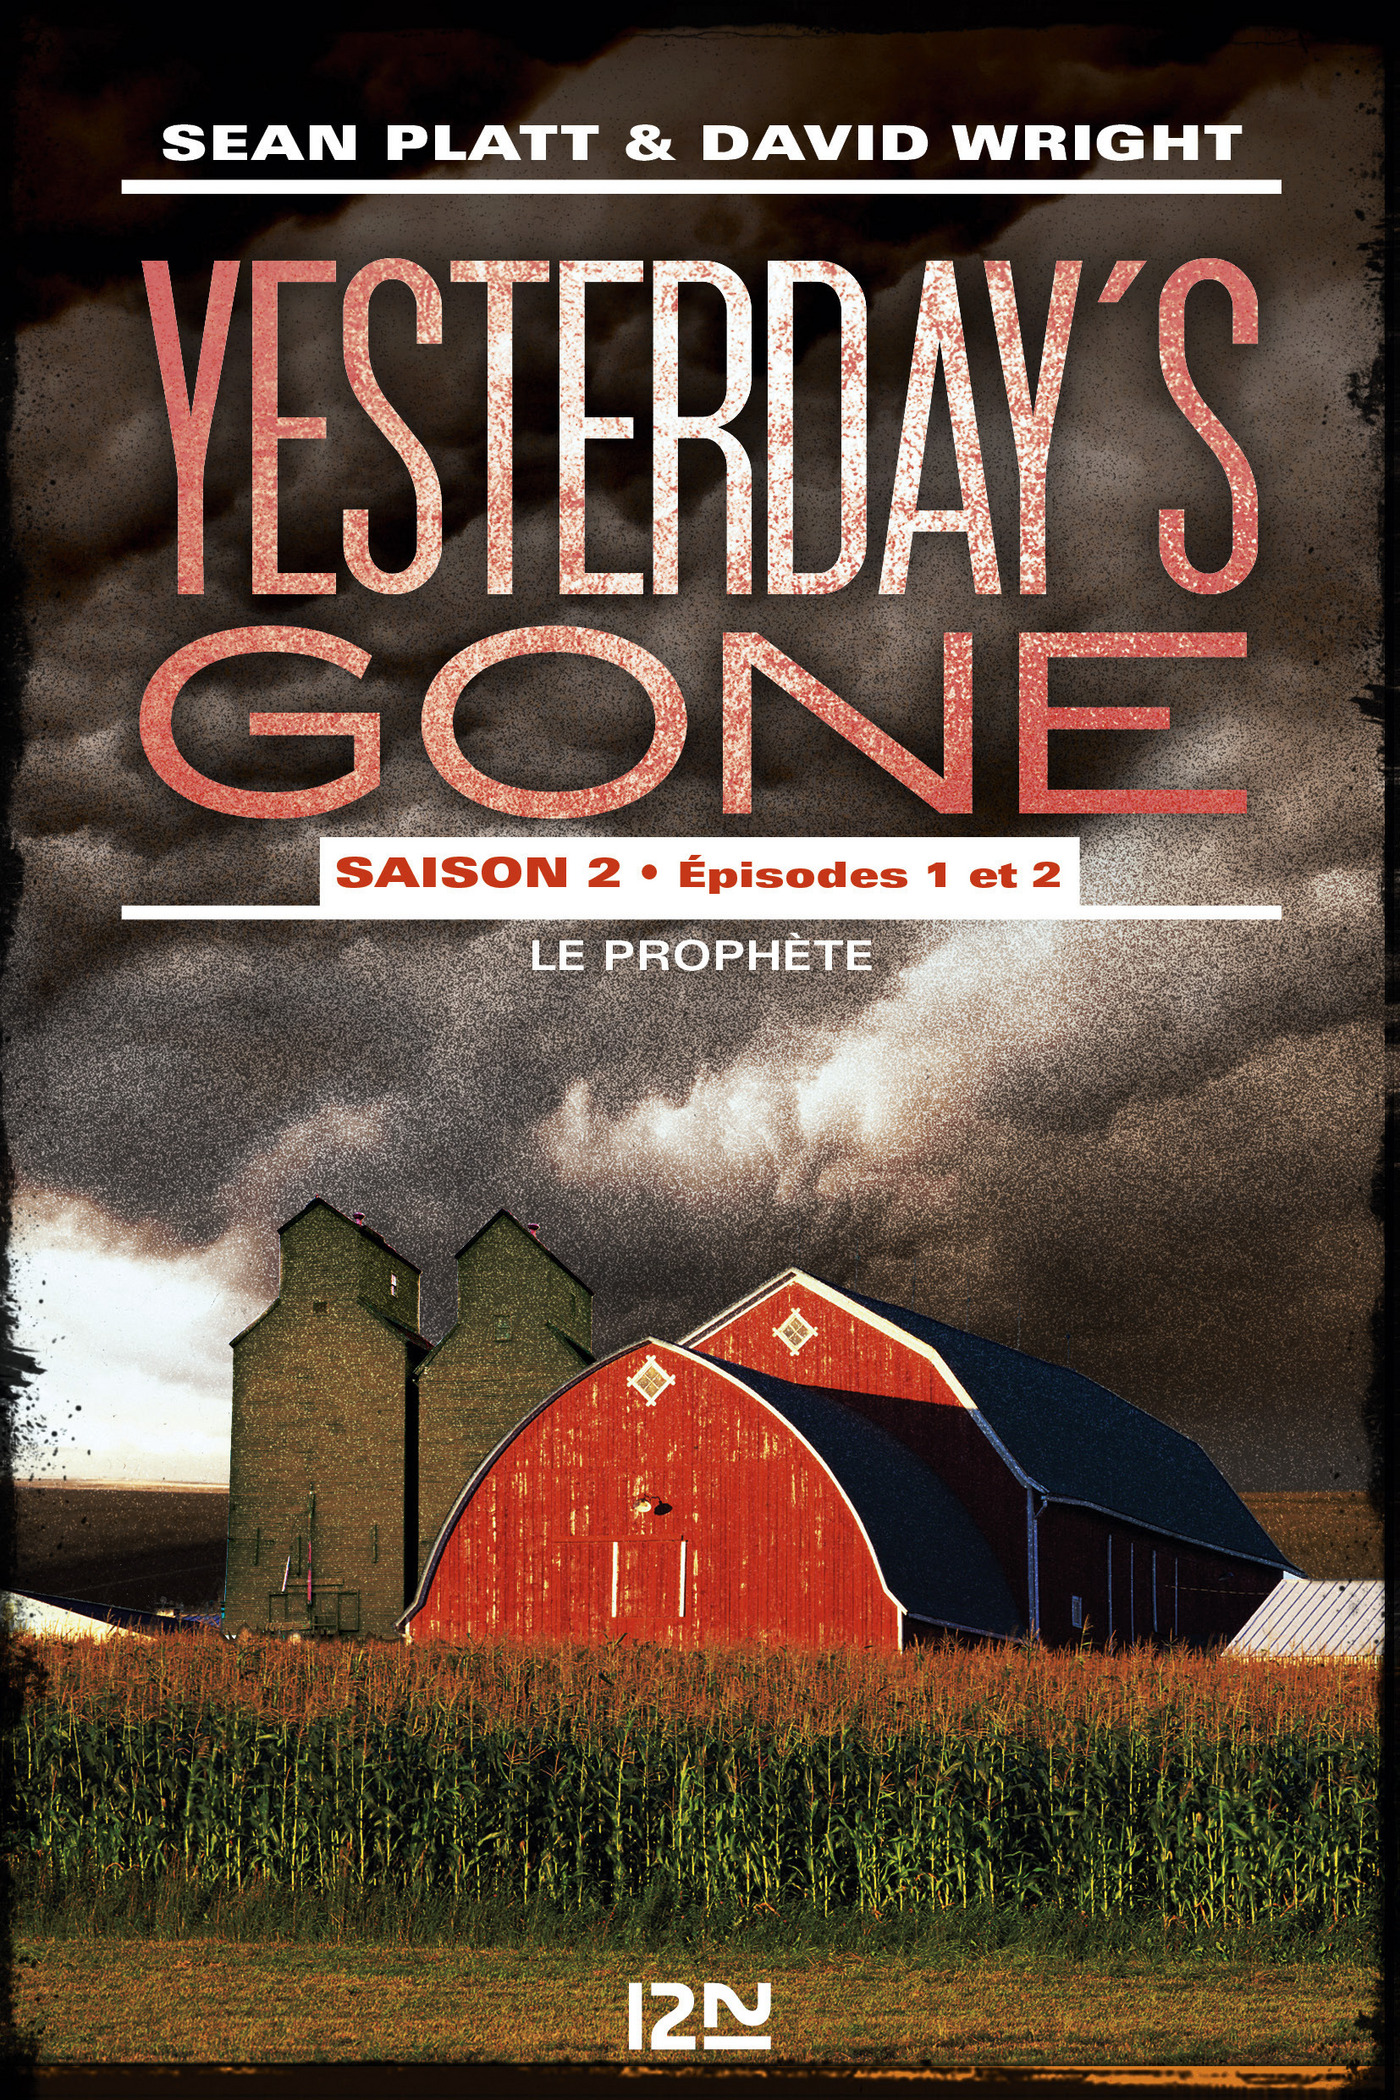 Yesterday's gone - saison 2 - épisodes 1 & 2 (ebook)